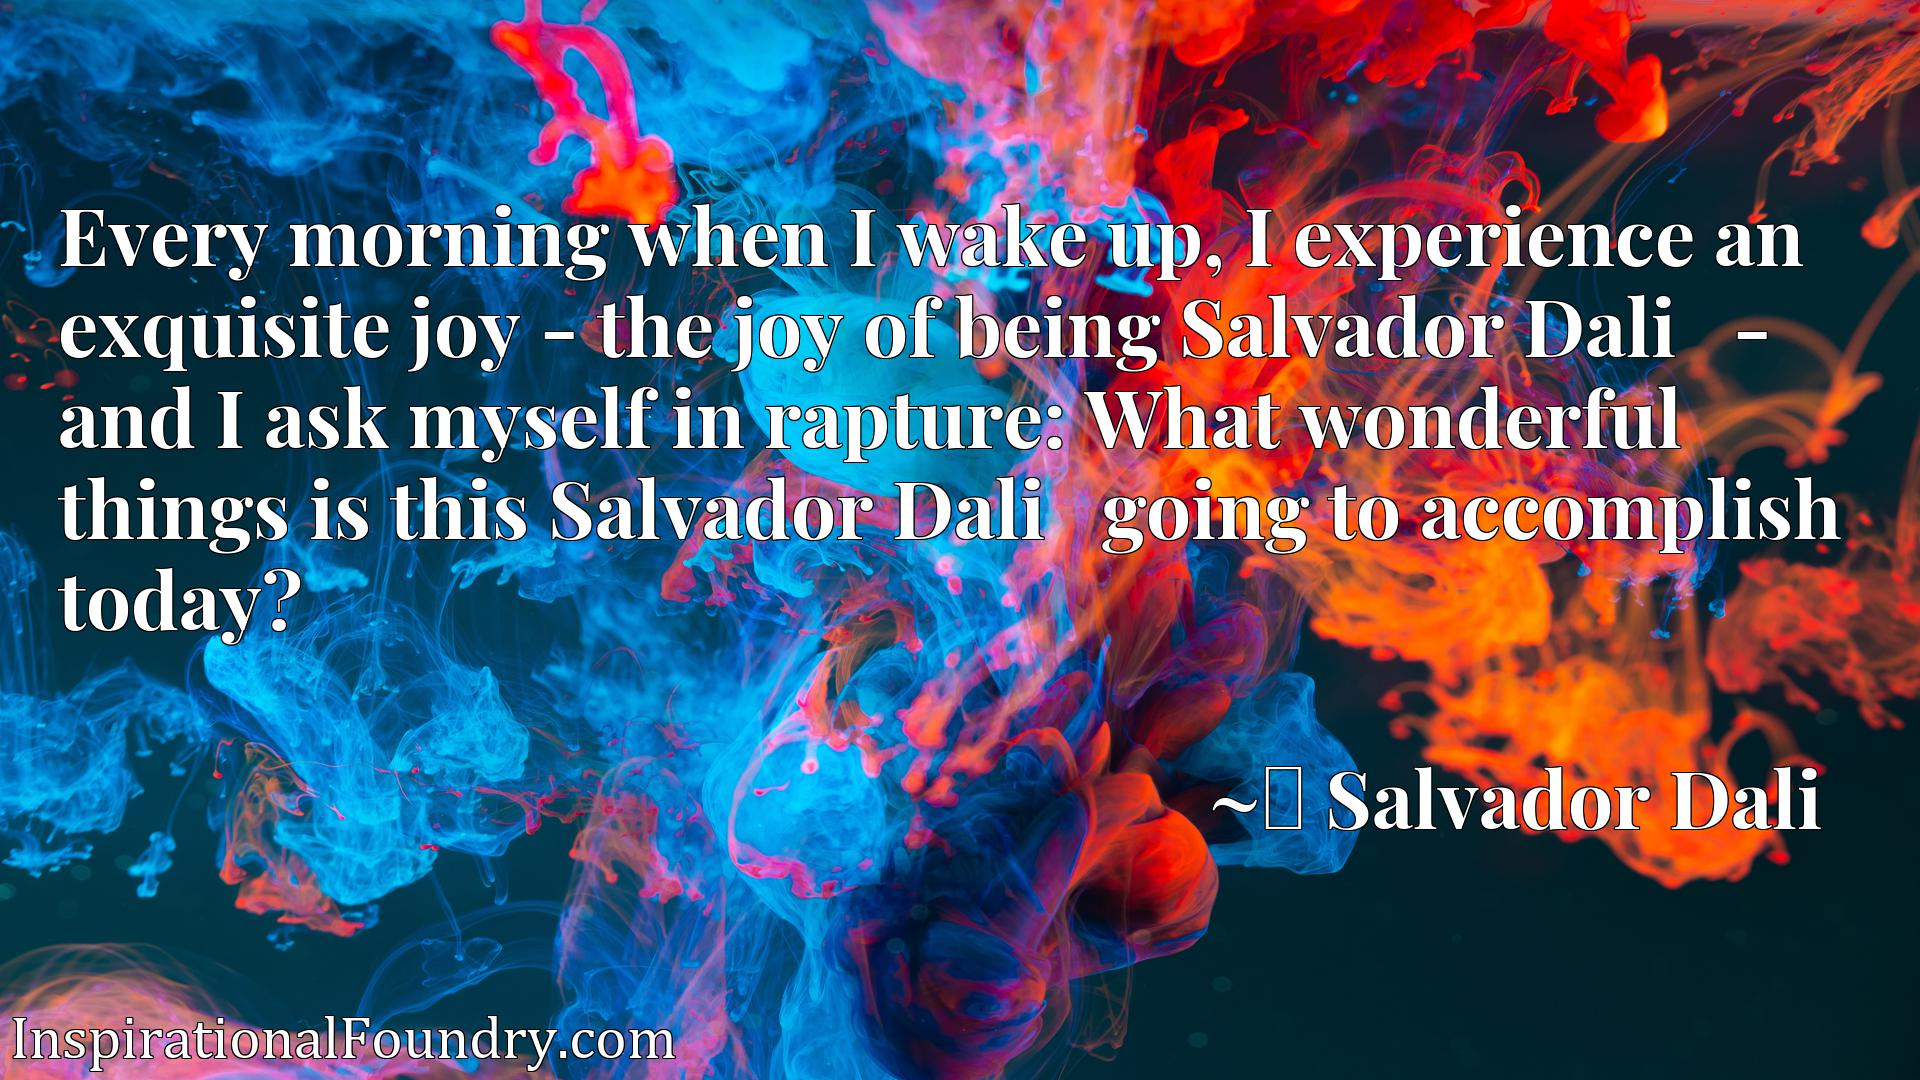 Every morning when I wake up, I experience an exquisite joy - the joy of being Salvador Dalixad - and I ask myself in rapture: What wonderful things is this Salvador Dalixad going to accomplish today?